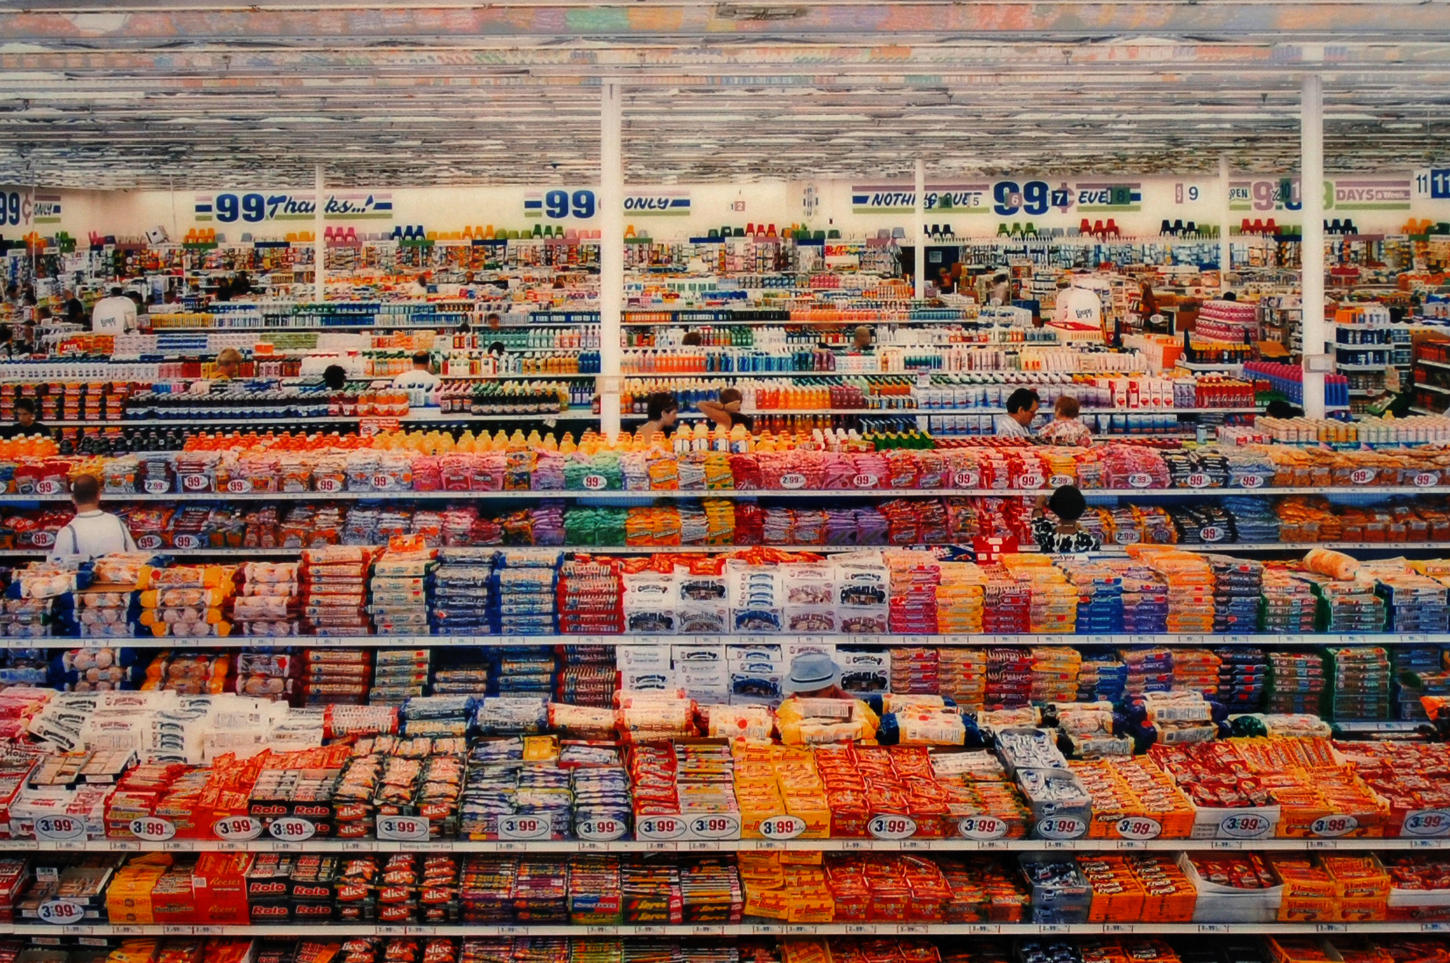 zcs_08_andreas_gursky_architecture_017